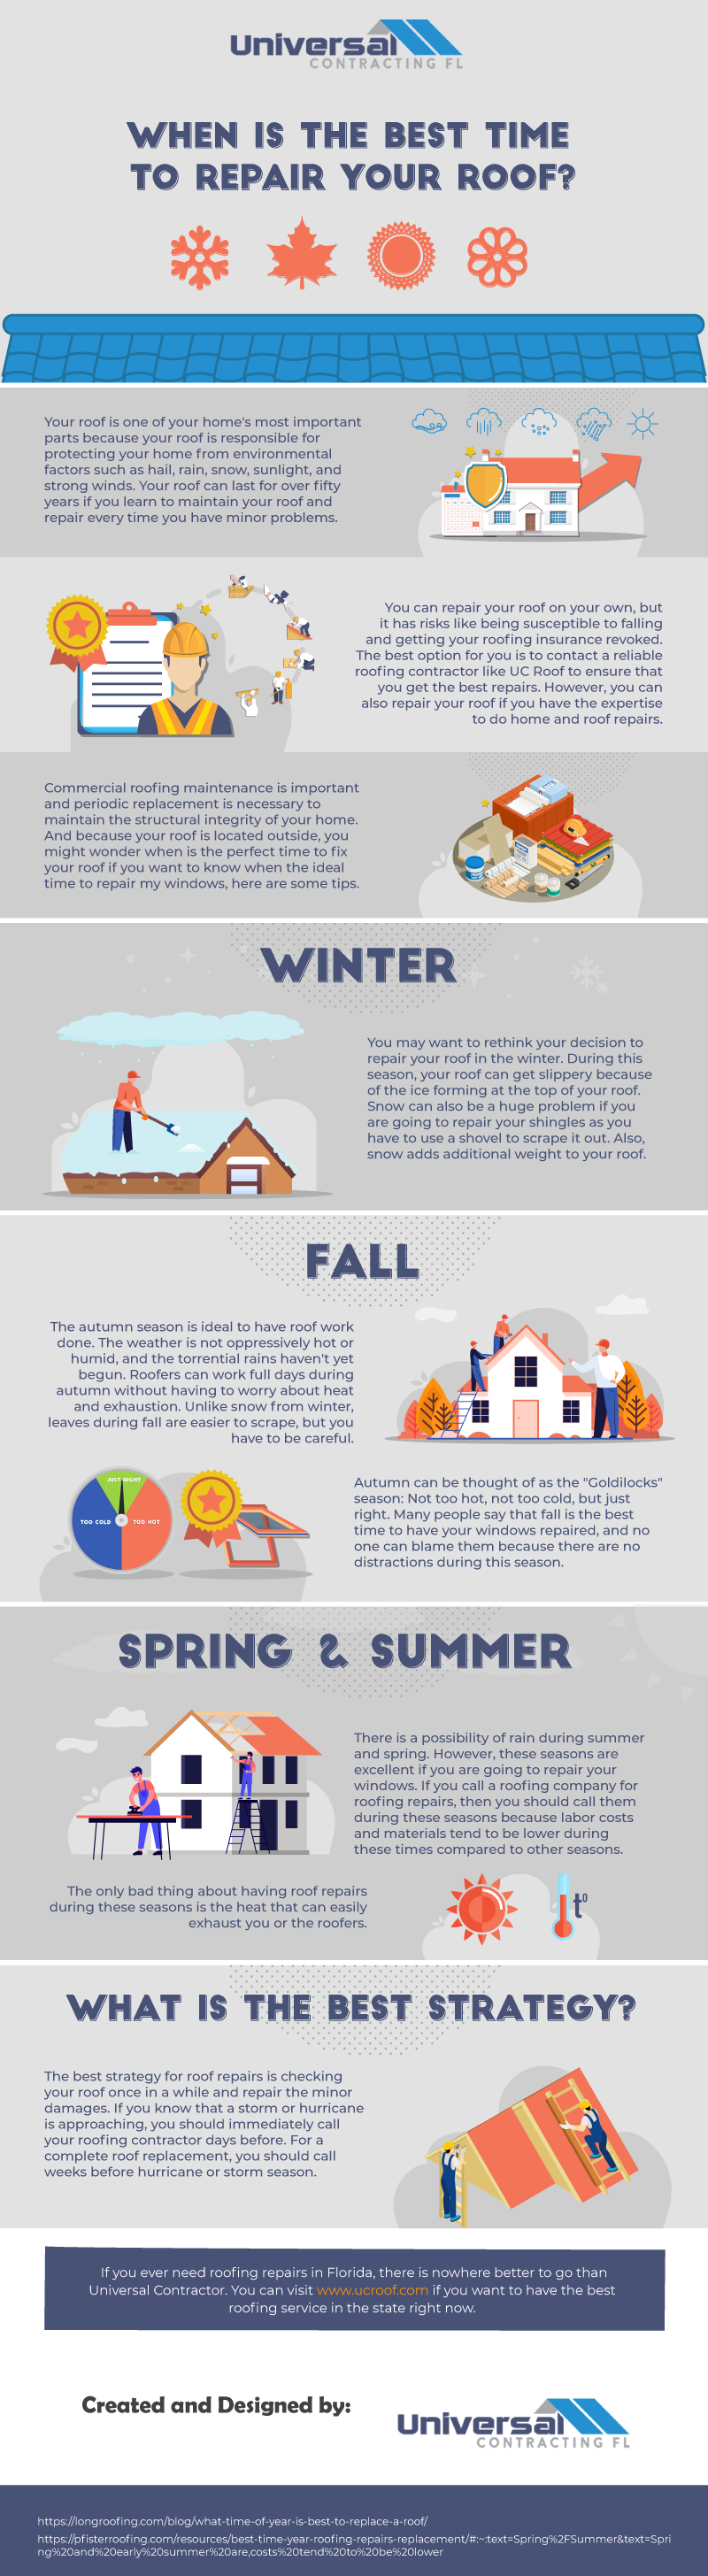 When is the Best Time to Repair your Roof?